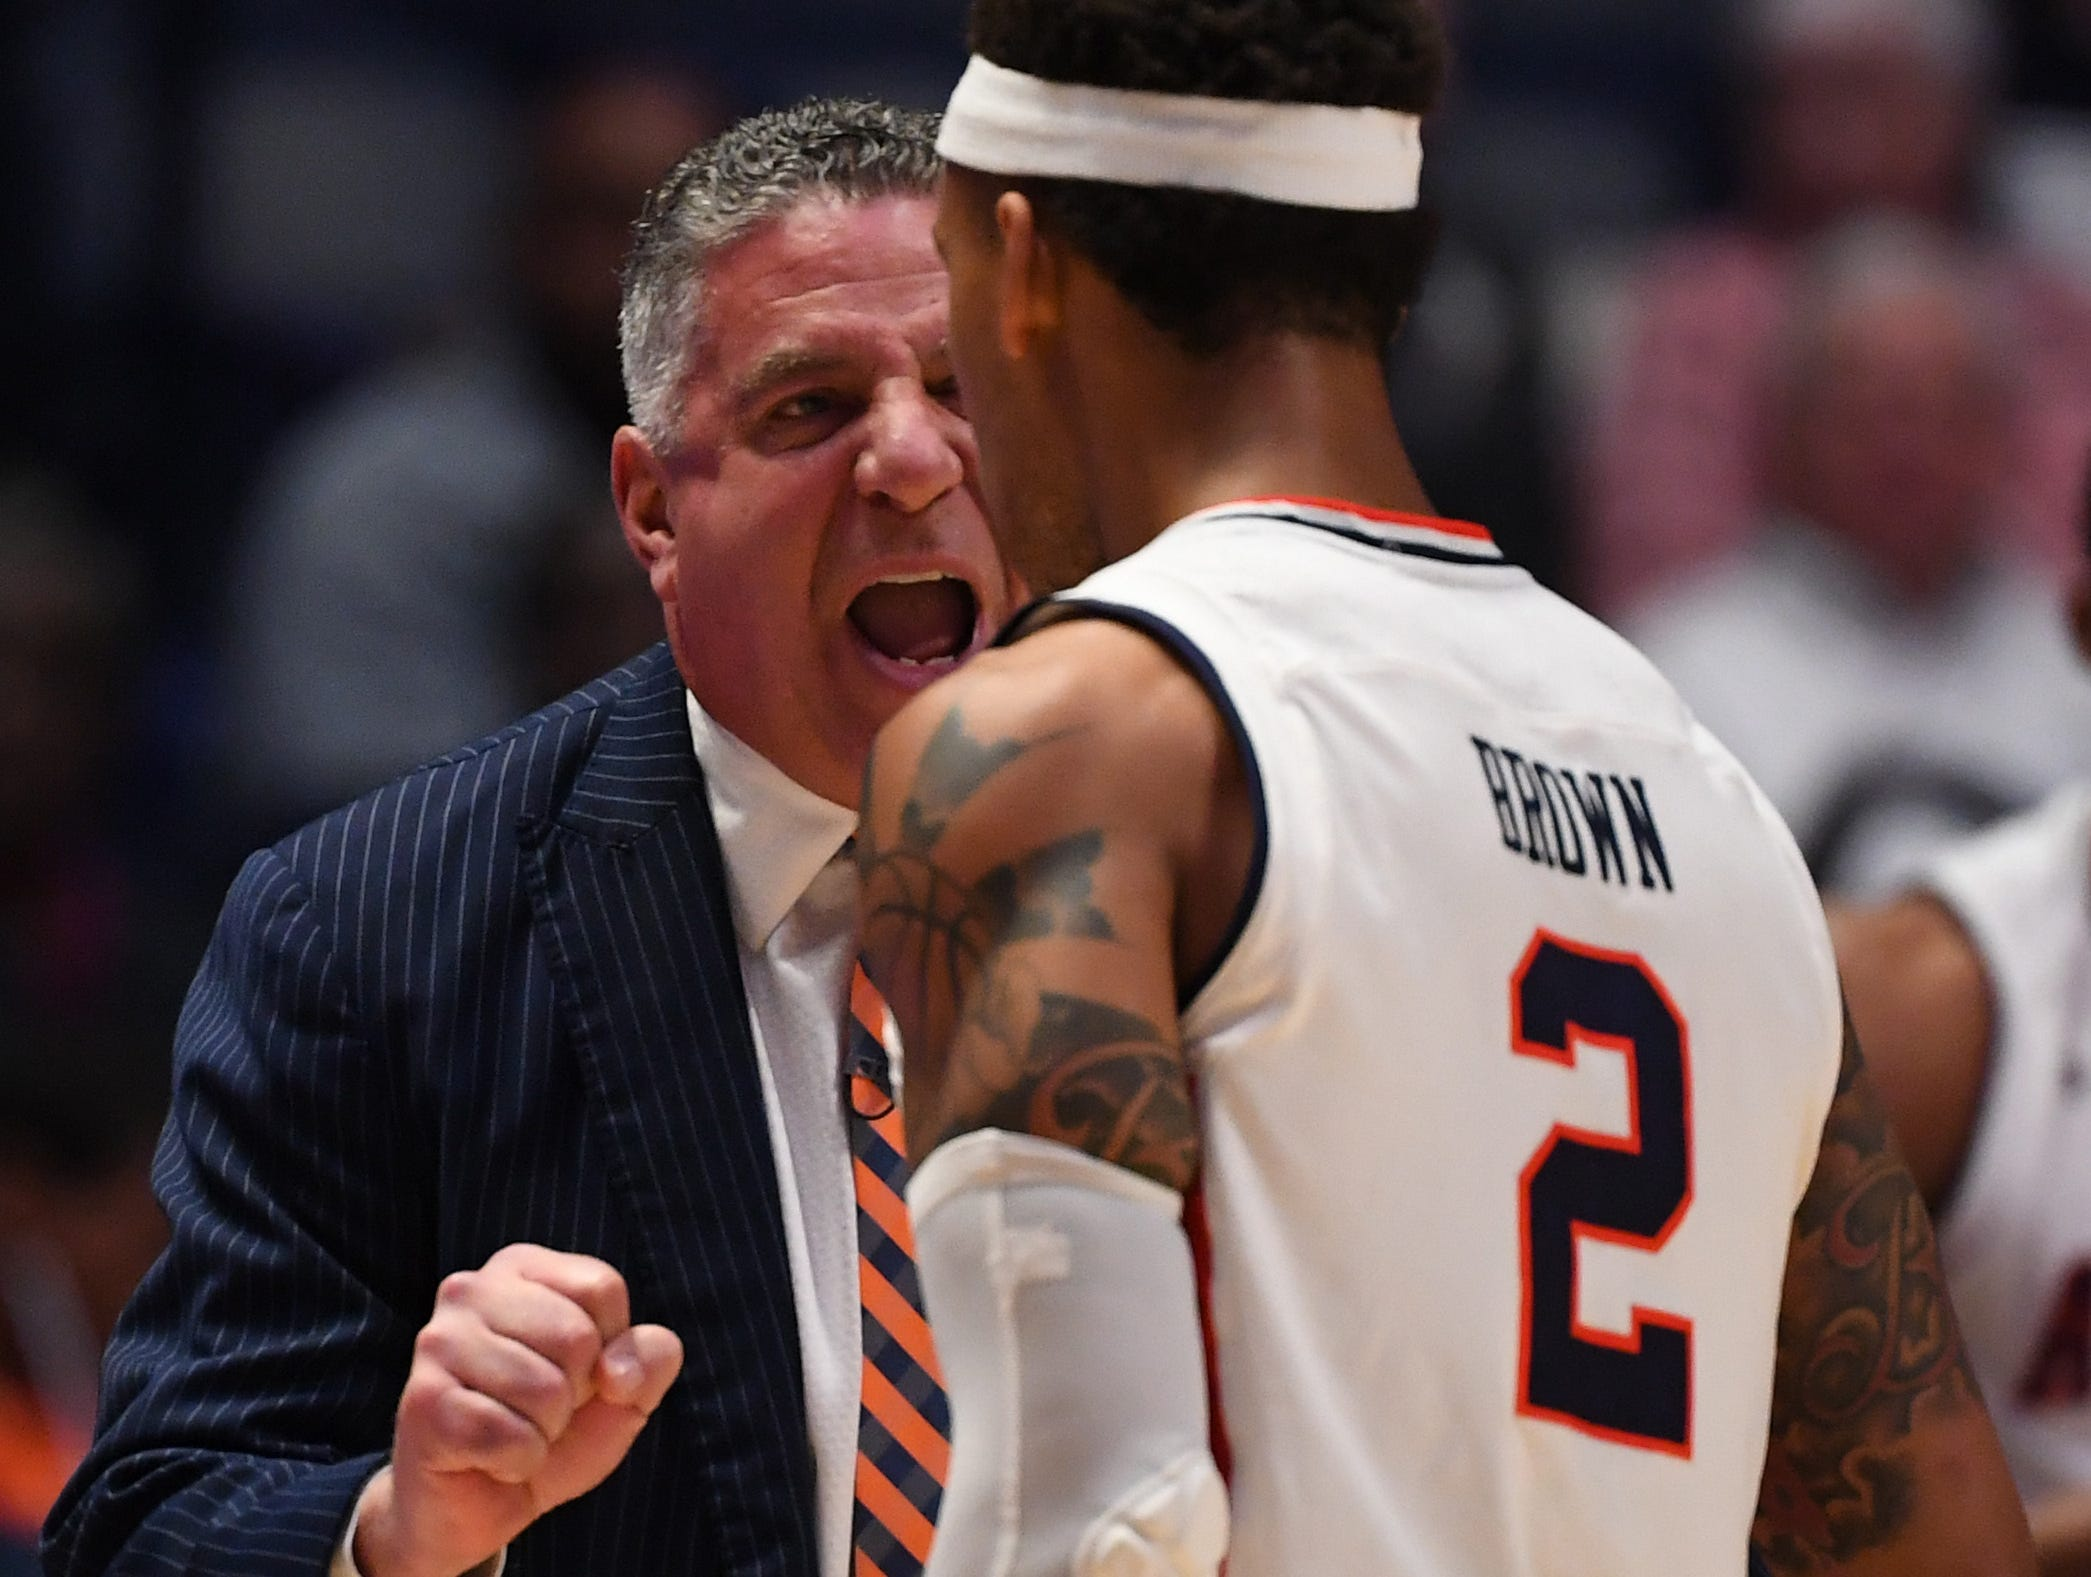 Mar 14, 2019; Nashville, TN, USA; Auburn Tigers head coach Bruce Pearl talks with guard Bryce Brown (2) against the Missouri Tigers during the first half of the SEC conference tournament at Bridgestone Arena. Mandatory Credit: Christopher Hanewinckel-USA TODAY Sports